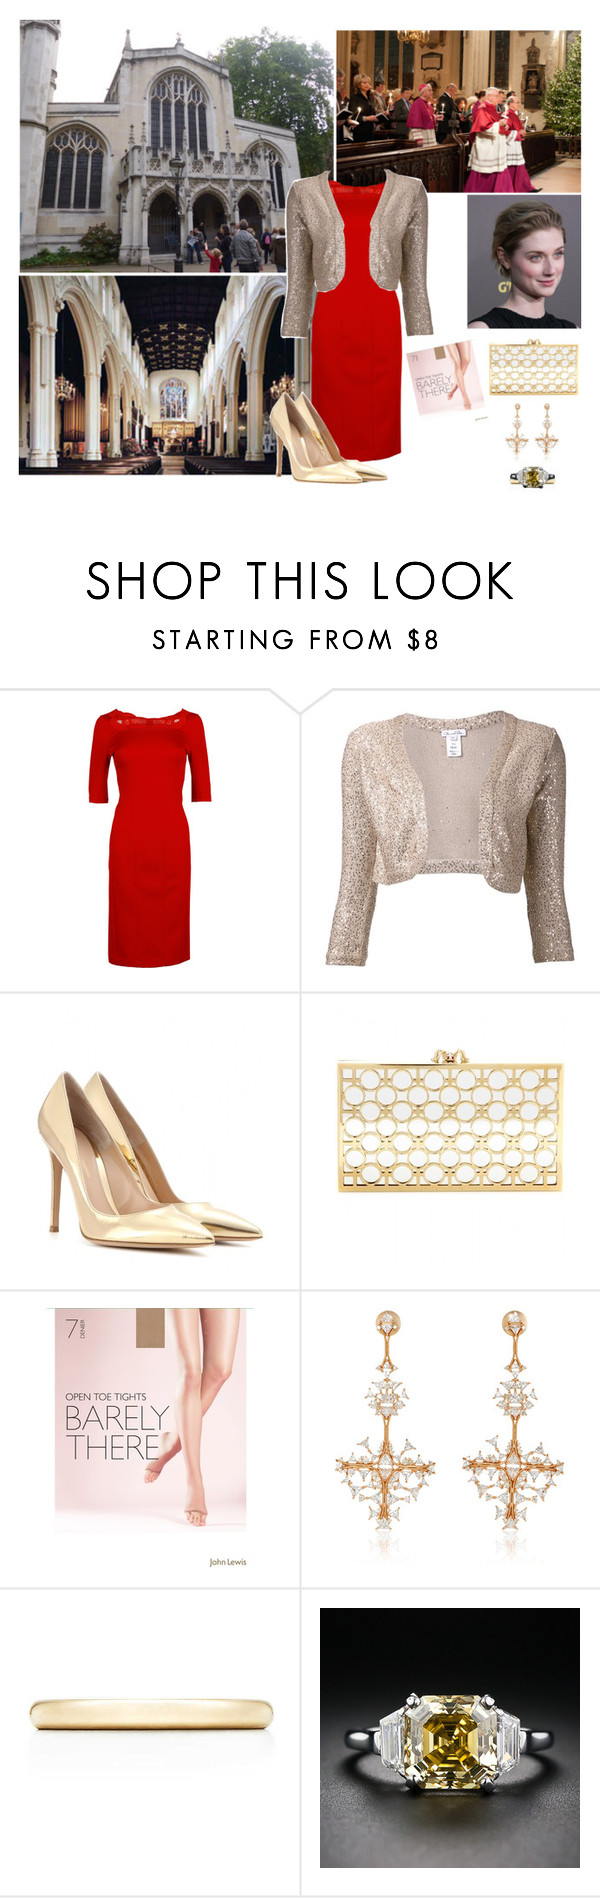 """""""Victoria attending a Christmas carol service at St Margaret's Church, Westminster in support of charitable foundations  for children"""" by immortal-longings ❤ liked on Polyvore featuring Blumarine, Oscar de la Renta, Gianvito Rossi, Charlotte Olympia, John Lewis, Fernando Jorge and Tiffany & Co."""